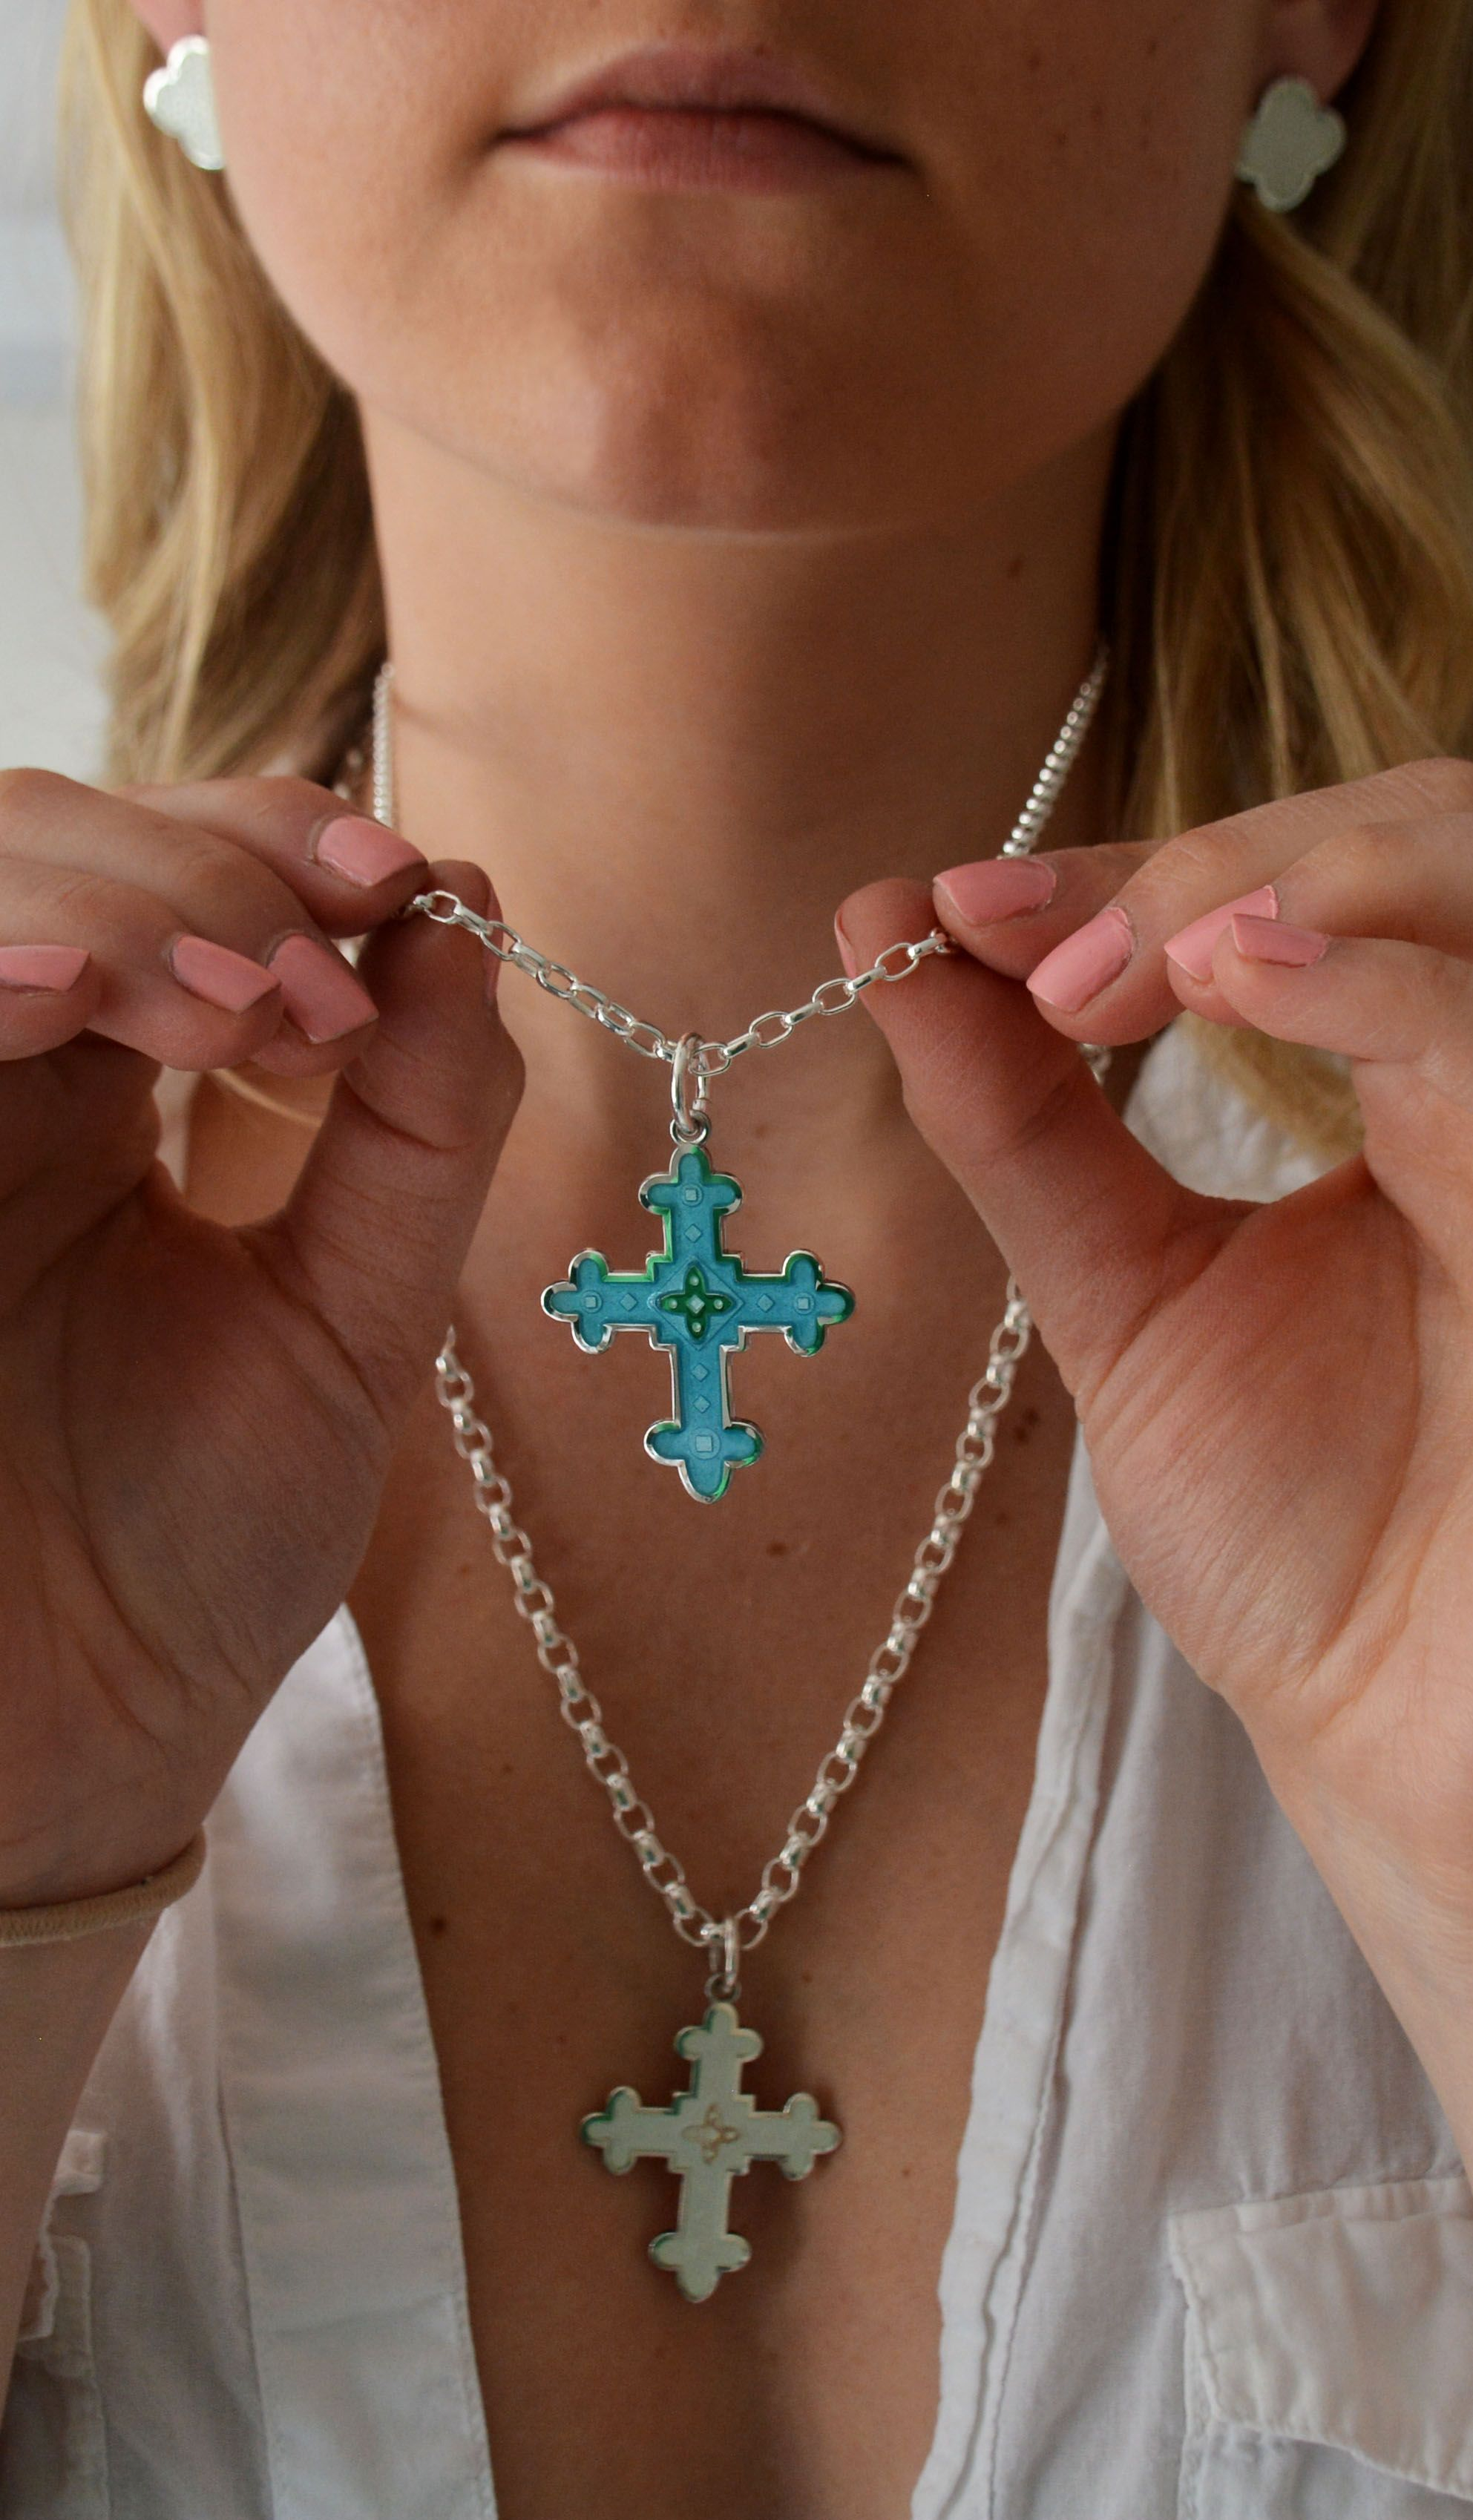 Colby Davis Byzantine Cross Pendant Glass Enamel And Sterling Silver 100 Made In Usa In 2020 Cross Pendant Pendant Jewelry